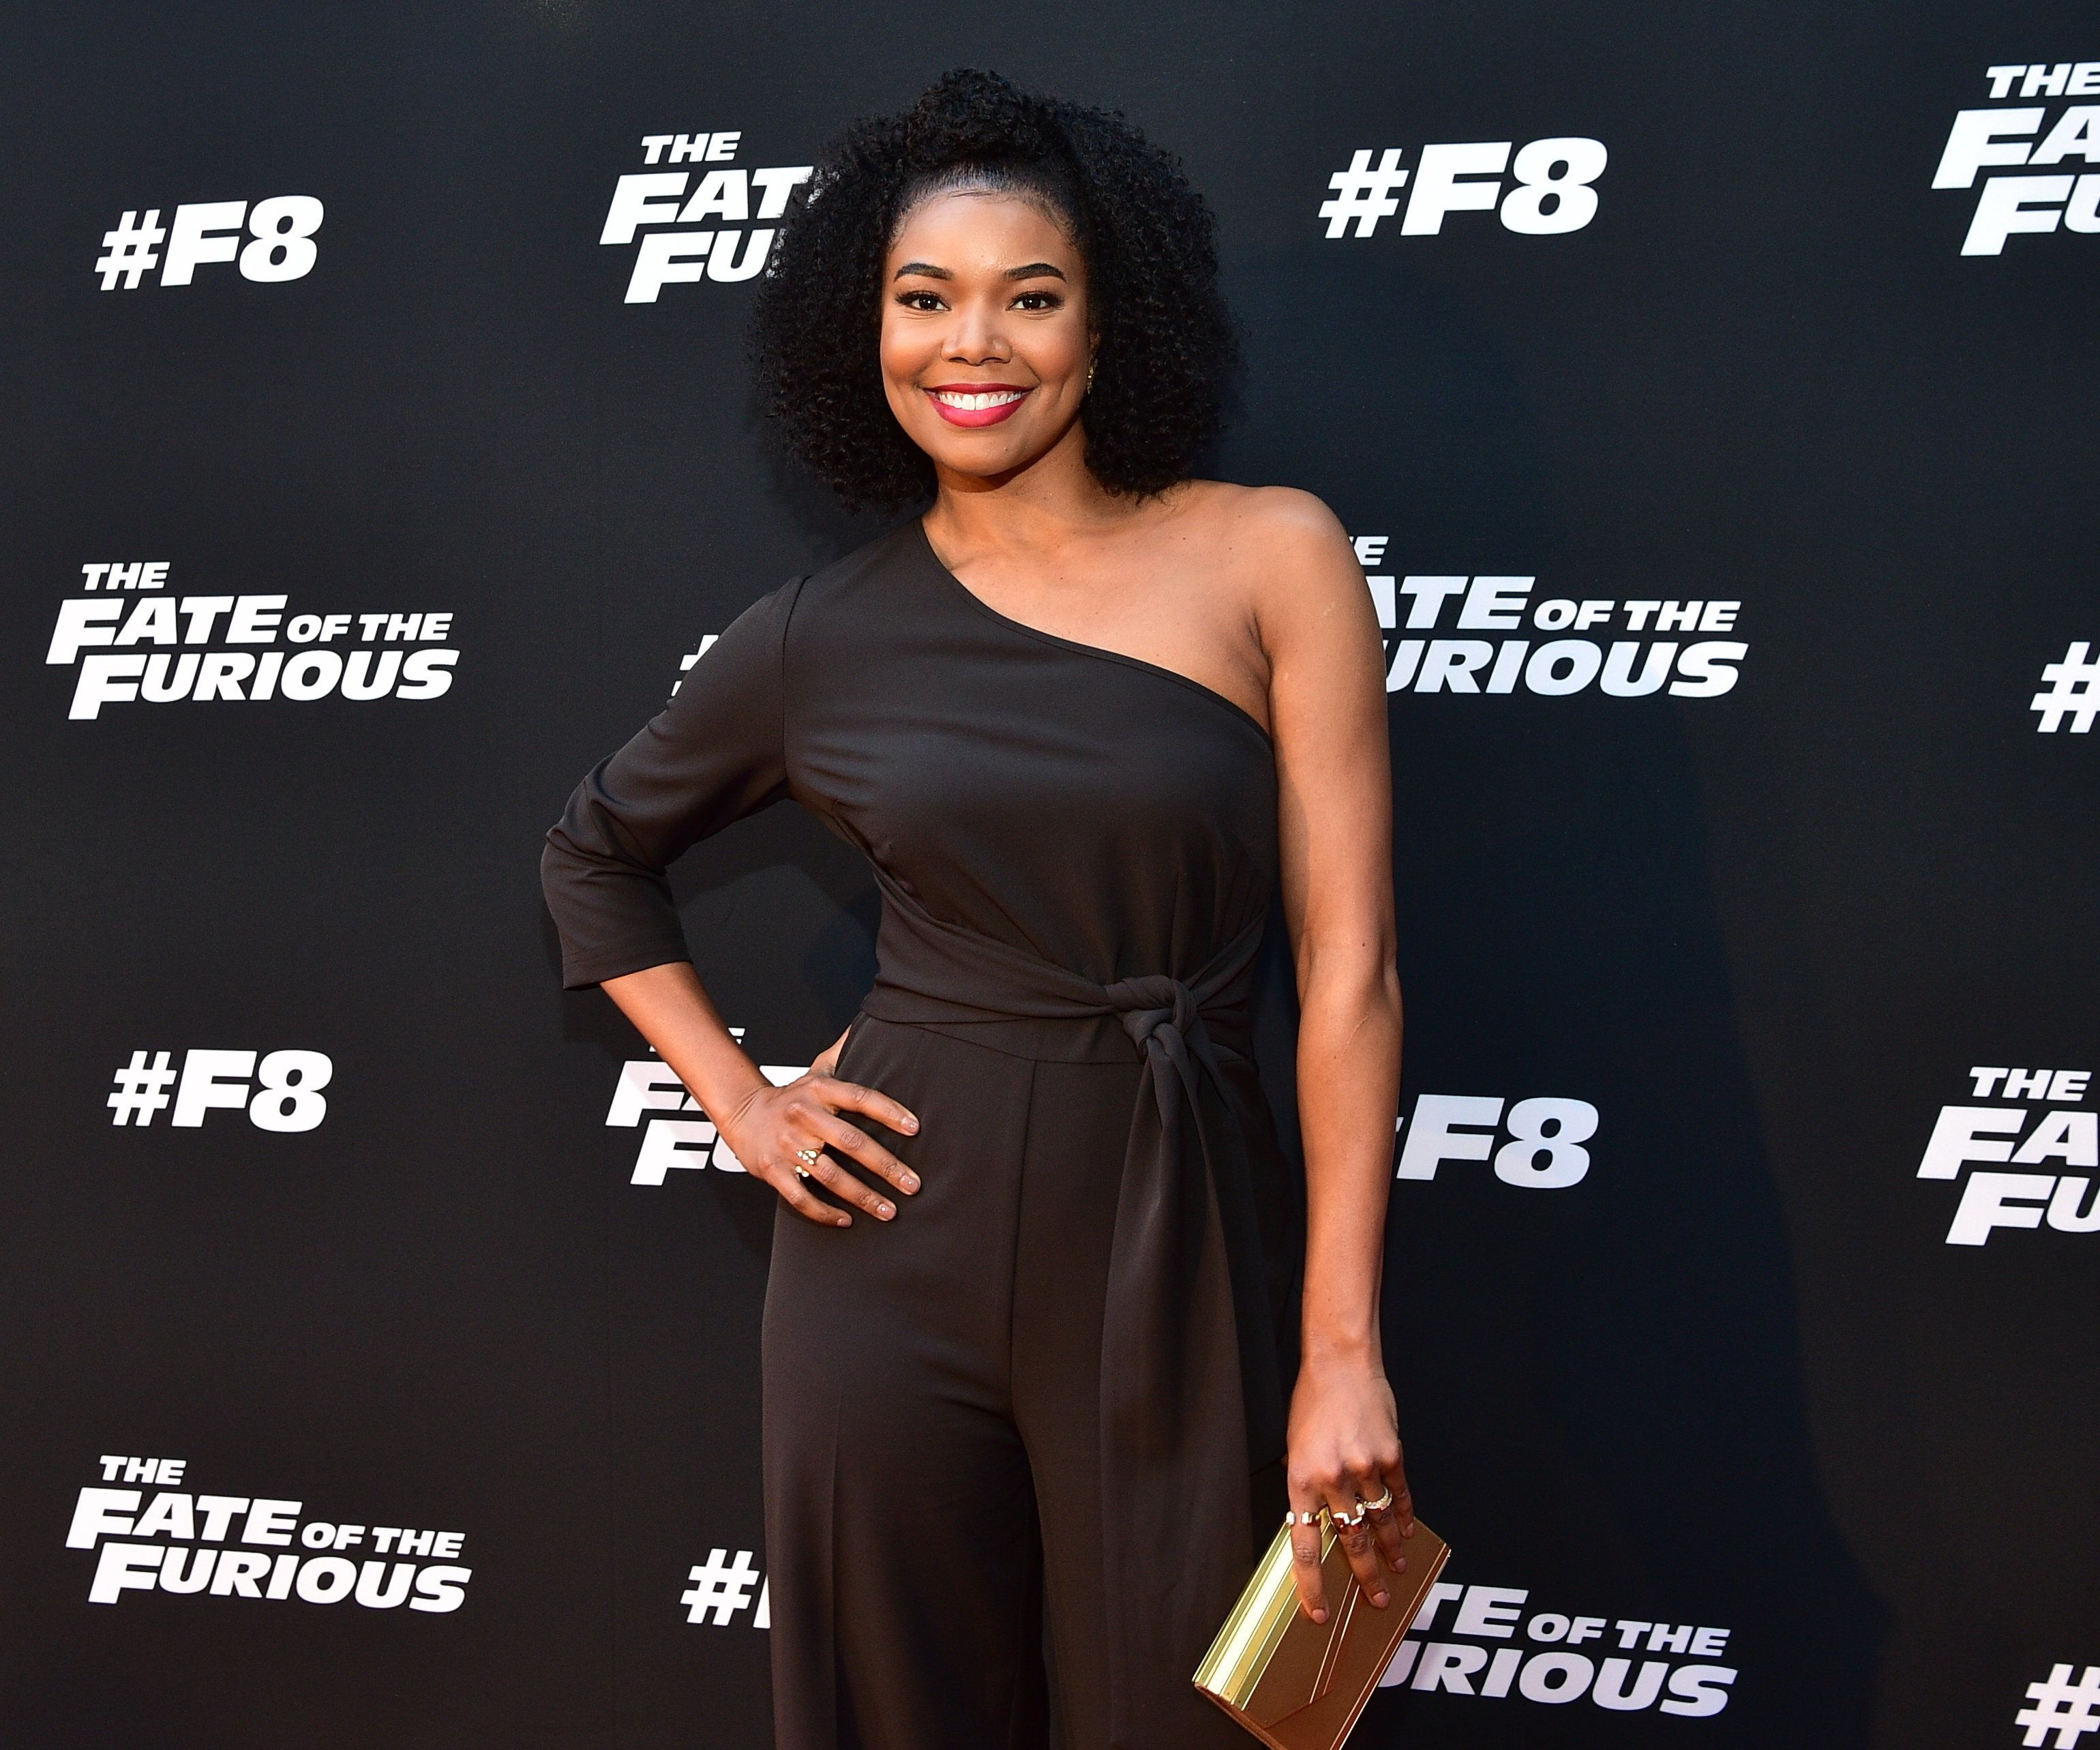 ATLANTA, GA - APRIL 04:  Actress Gabrielle union attends 'The Fate Of The Furious' at SCAD Show on April 4, 2017 in Atlanta, Georgia.  (Photo by Prince Williams/FilmMagic)